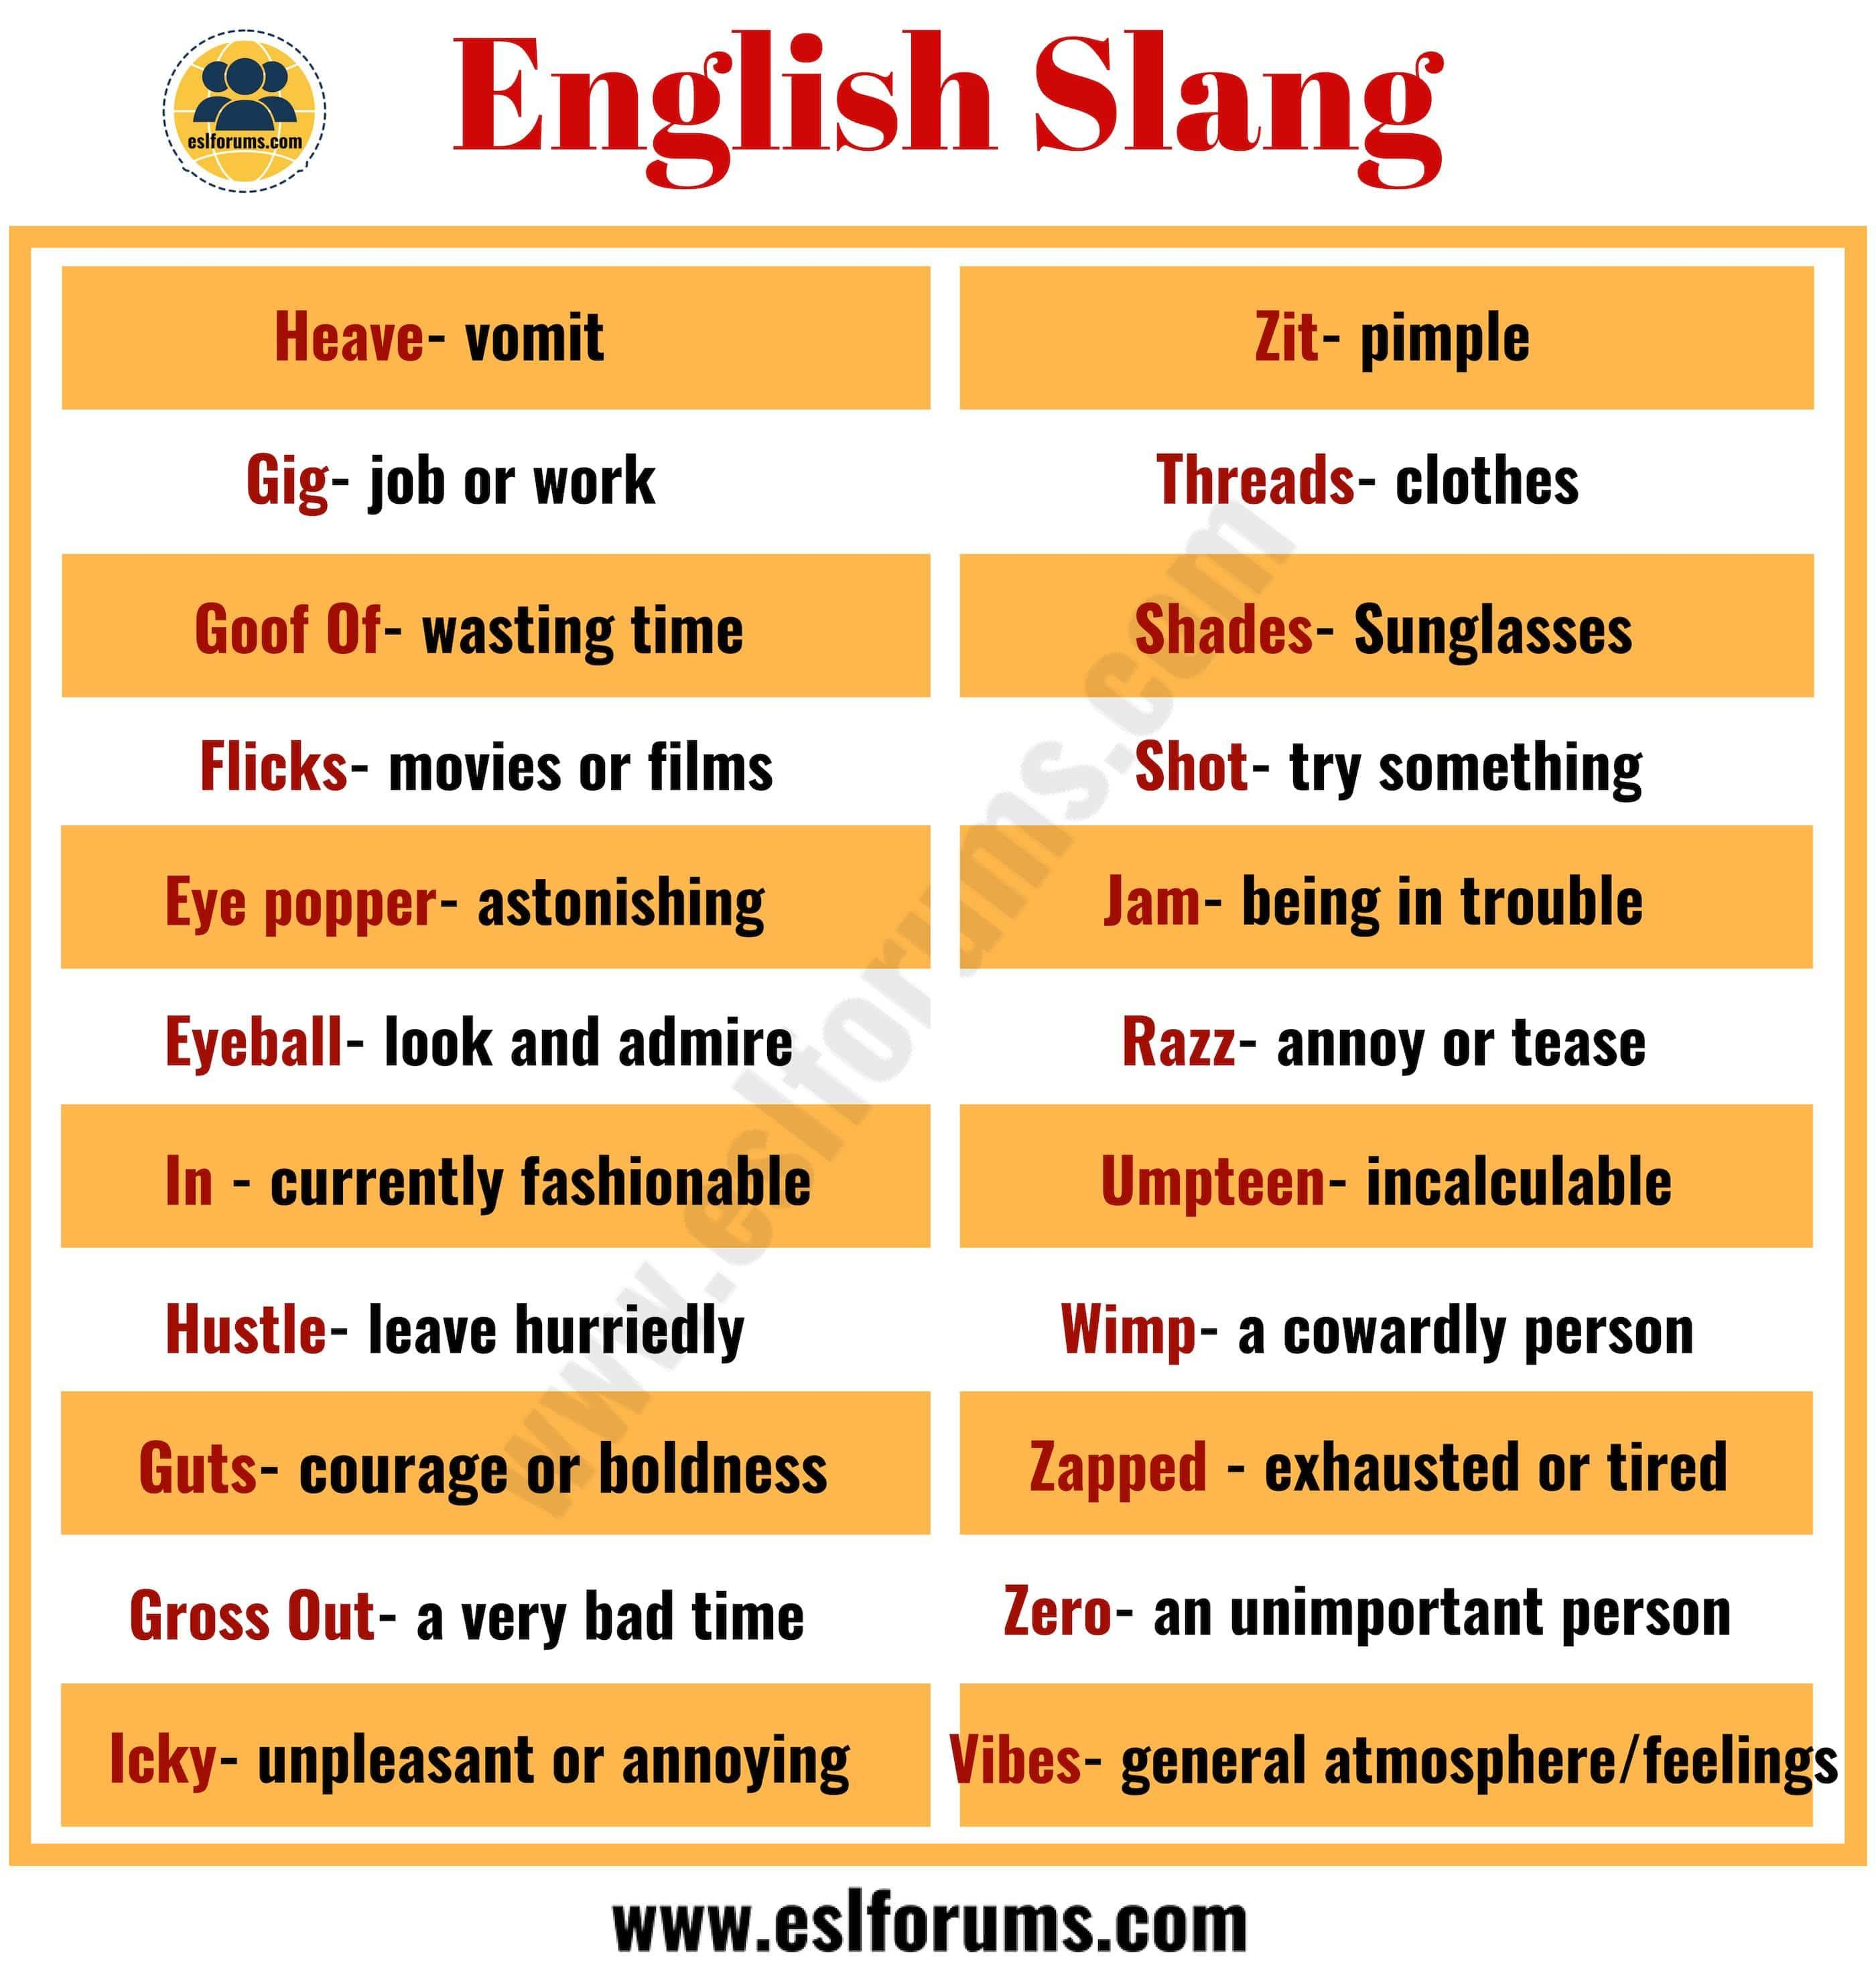 100 Common English Slang Words Amp Phrases You Need To Know